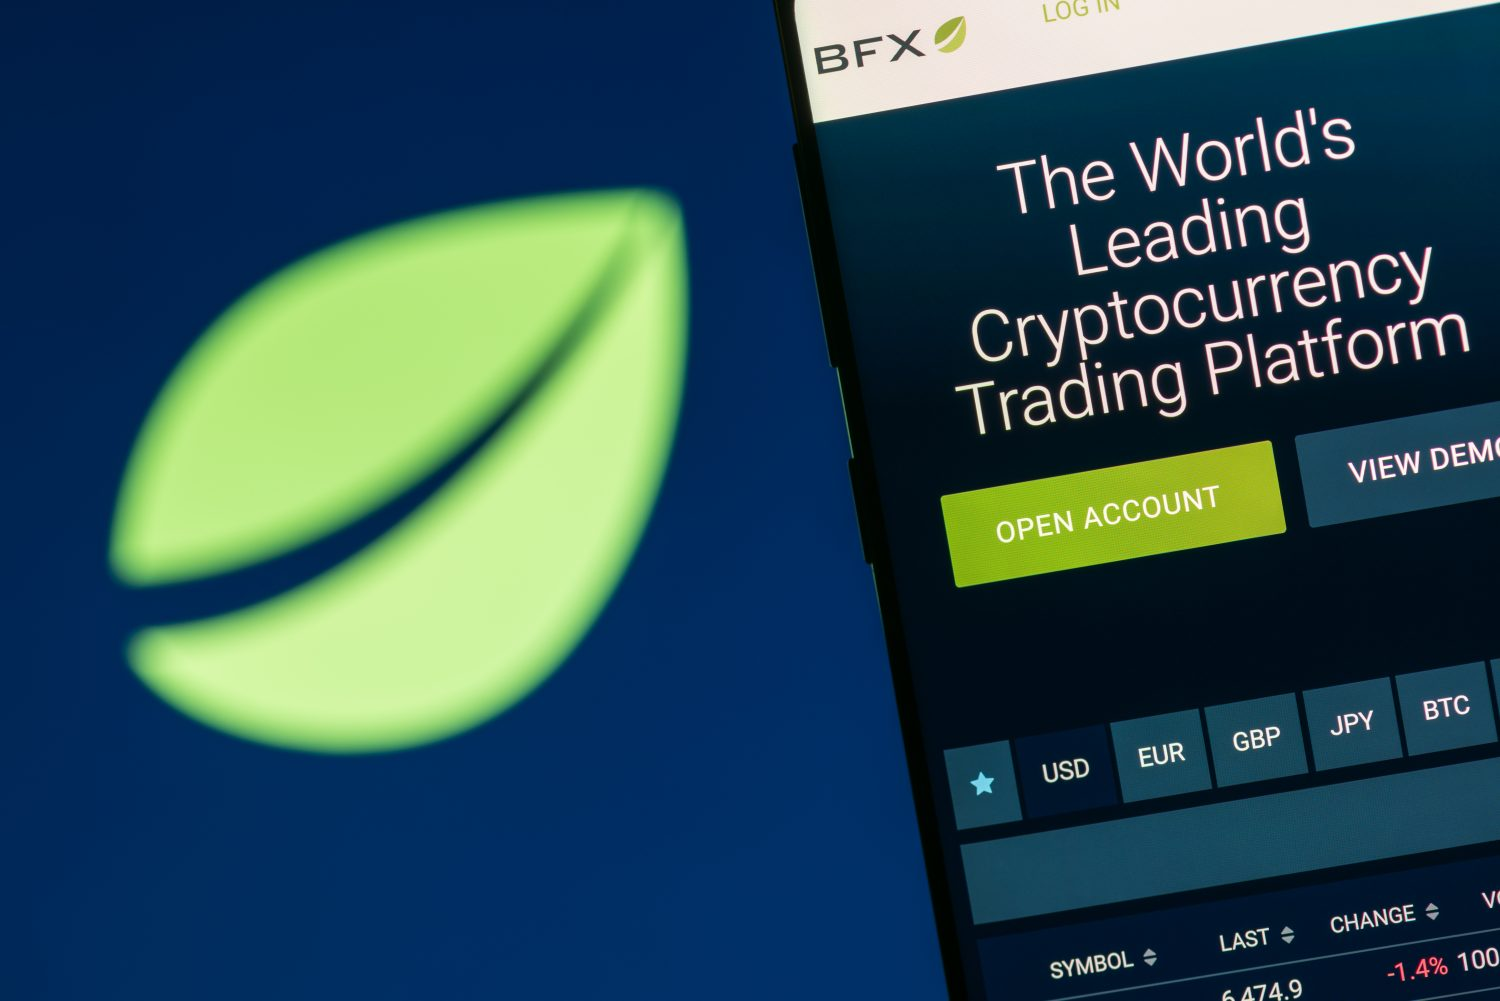 Bitfinex Will List Its New Exchange Token Starting Monday